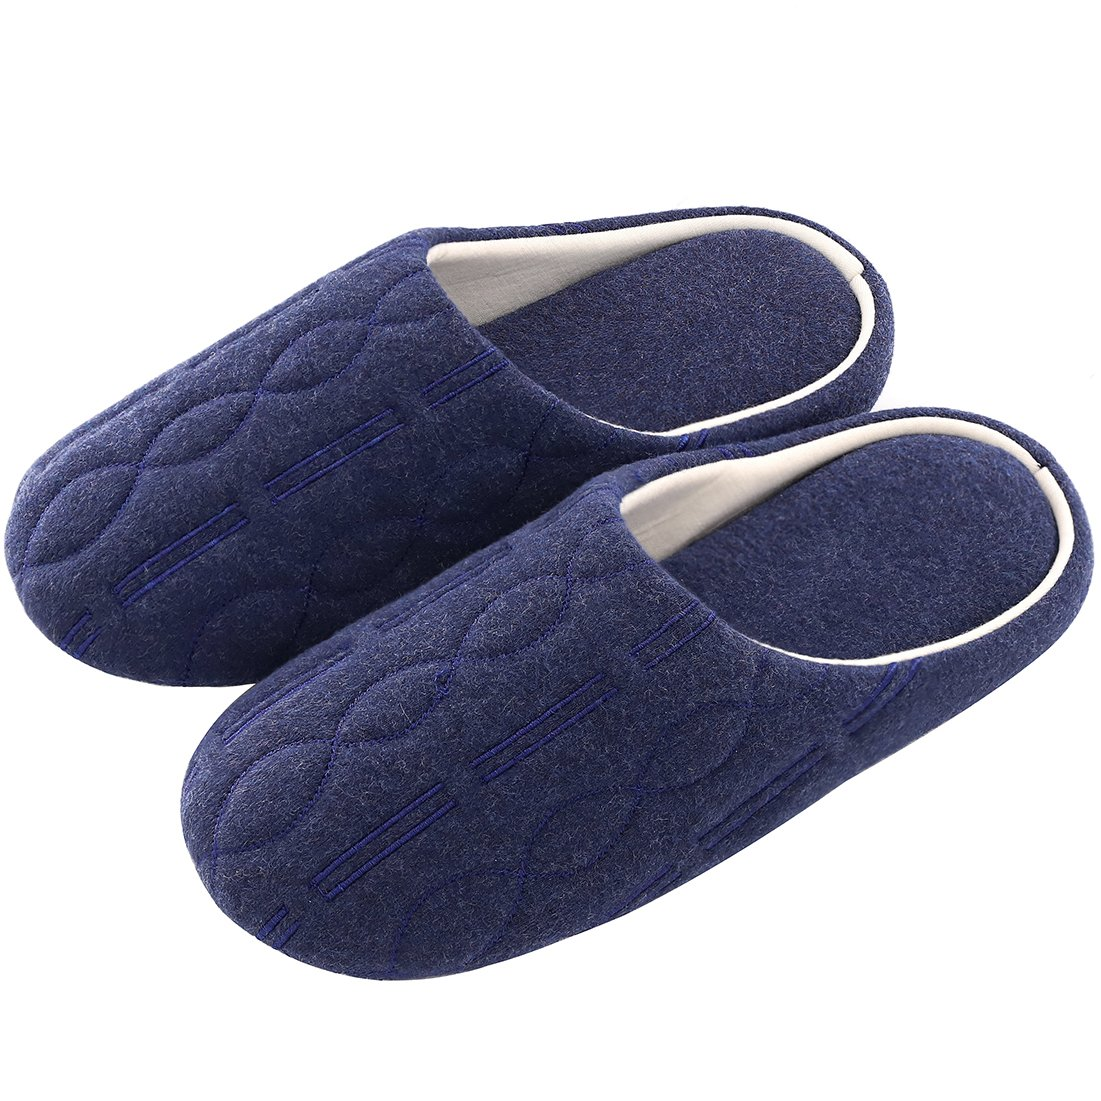 Women's Comfort Quilted Cotton Memory Foam House Slippers with Elegant Embroidery (Medium/7-8 B(M) US, Midnight Blue)